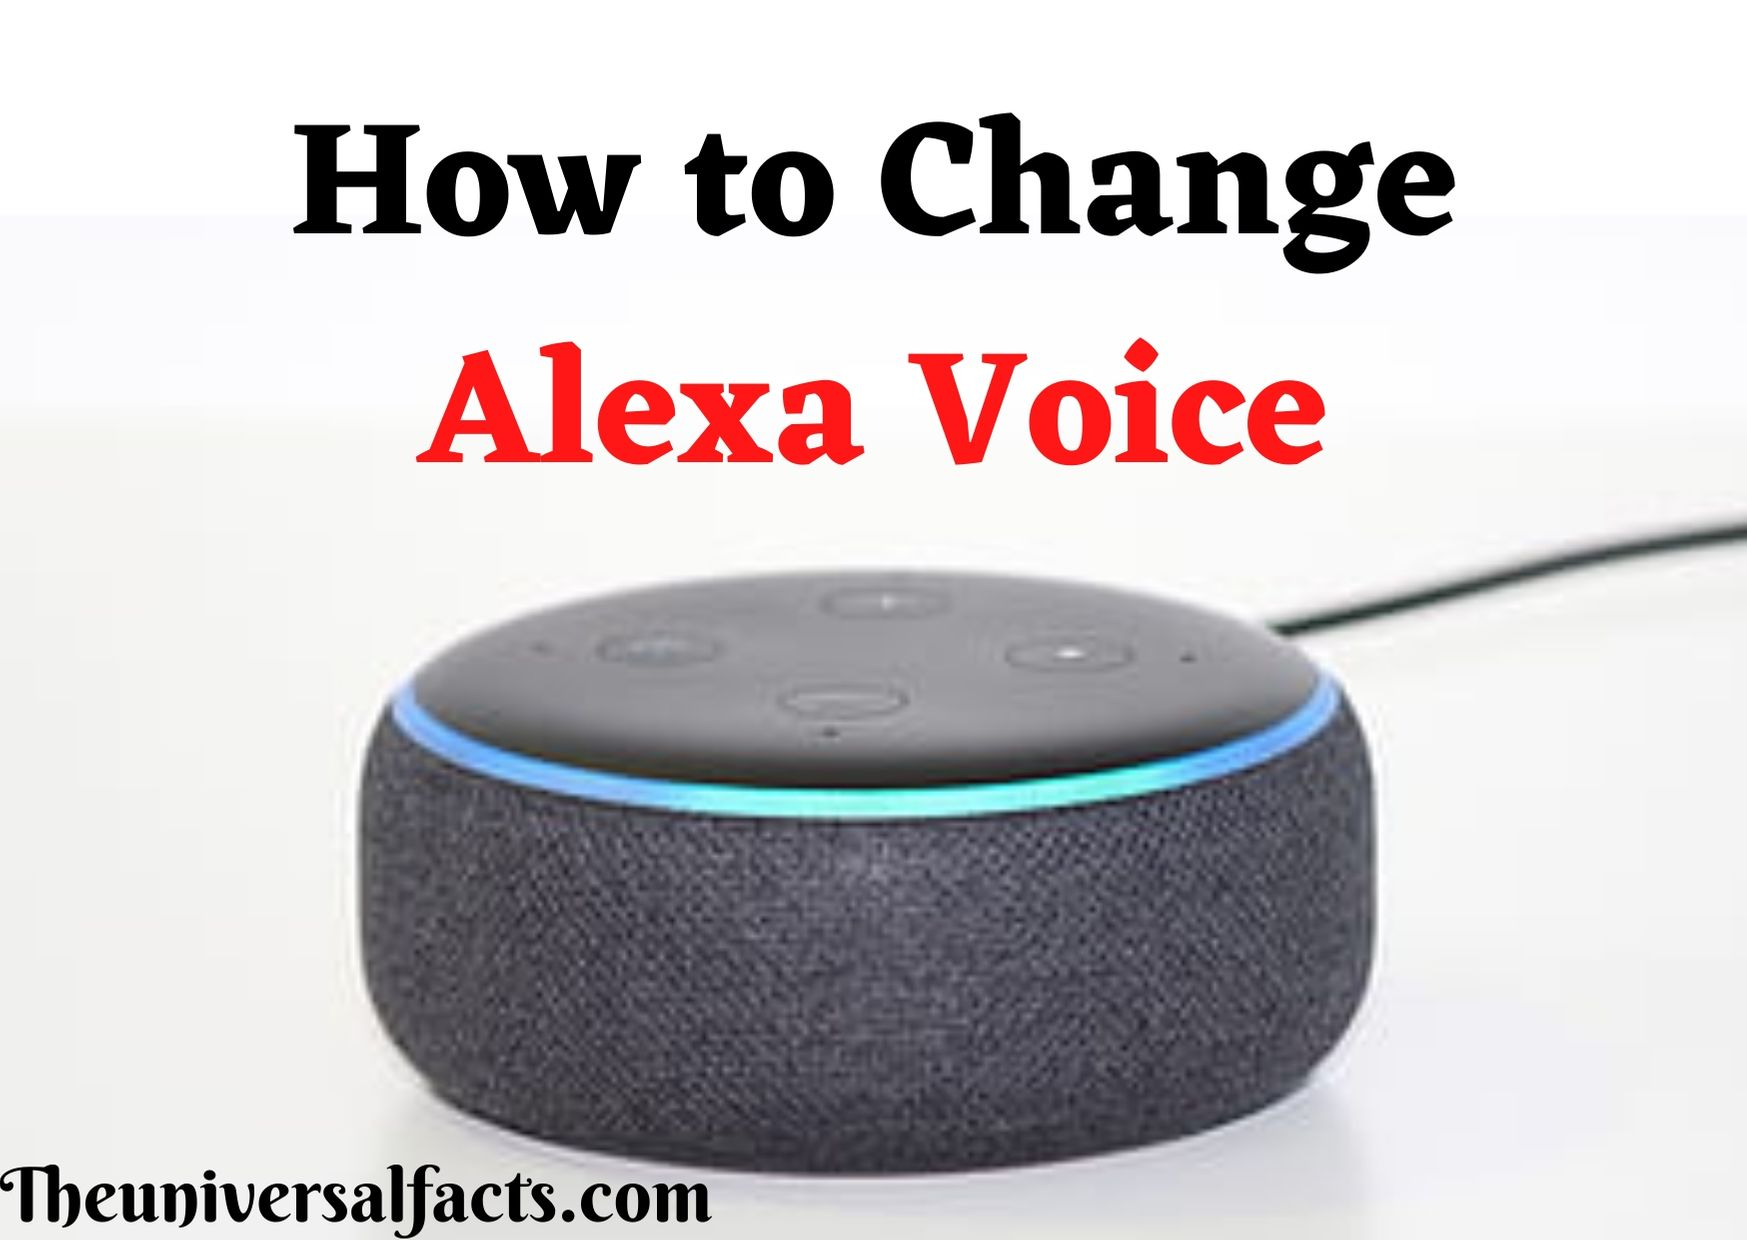 How to Change Alexa Voice